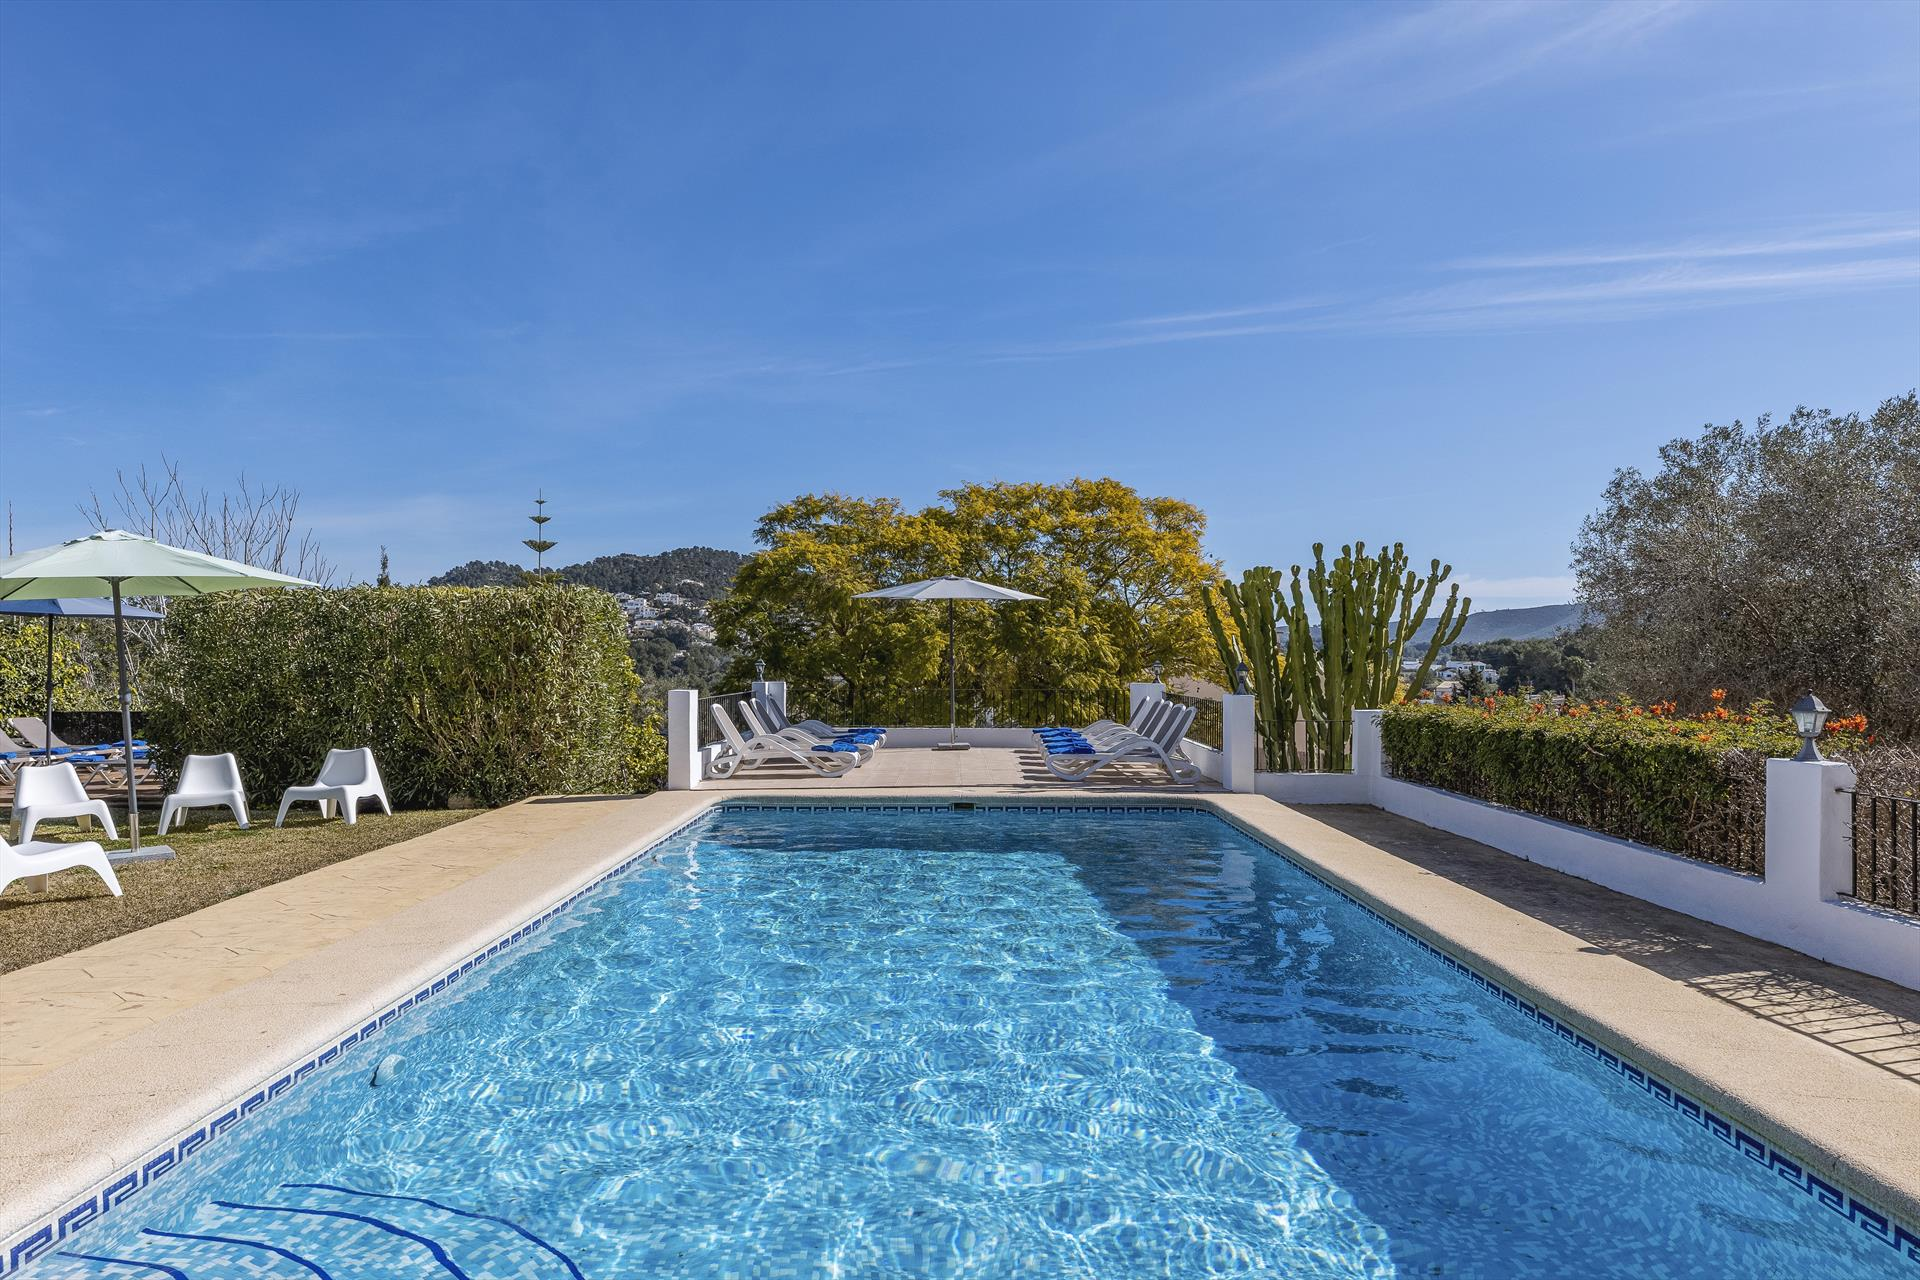 Casa Rosalia 18 pax, Large and comfortable villa in Javea, on the Costa Blanca, Spain  with private pool for 18 persons.....